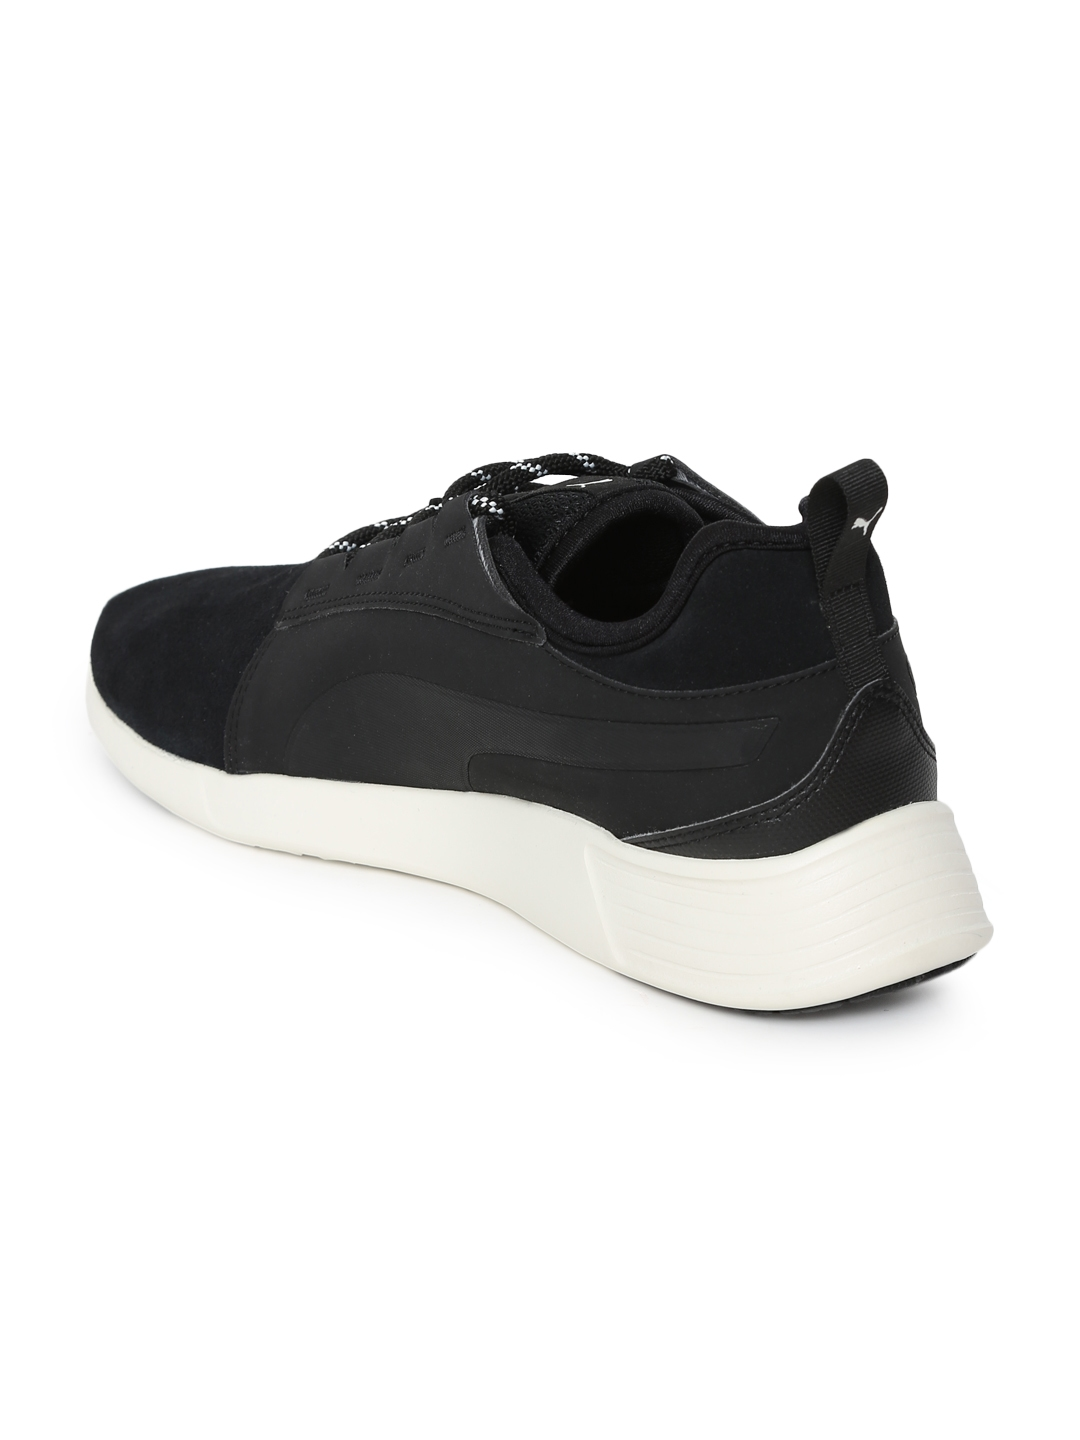 7db5a9bceee Buy Puma Men Black ST Trainer Evo SD V2 IDP Suede Sneakers - Casual ...